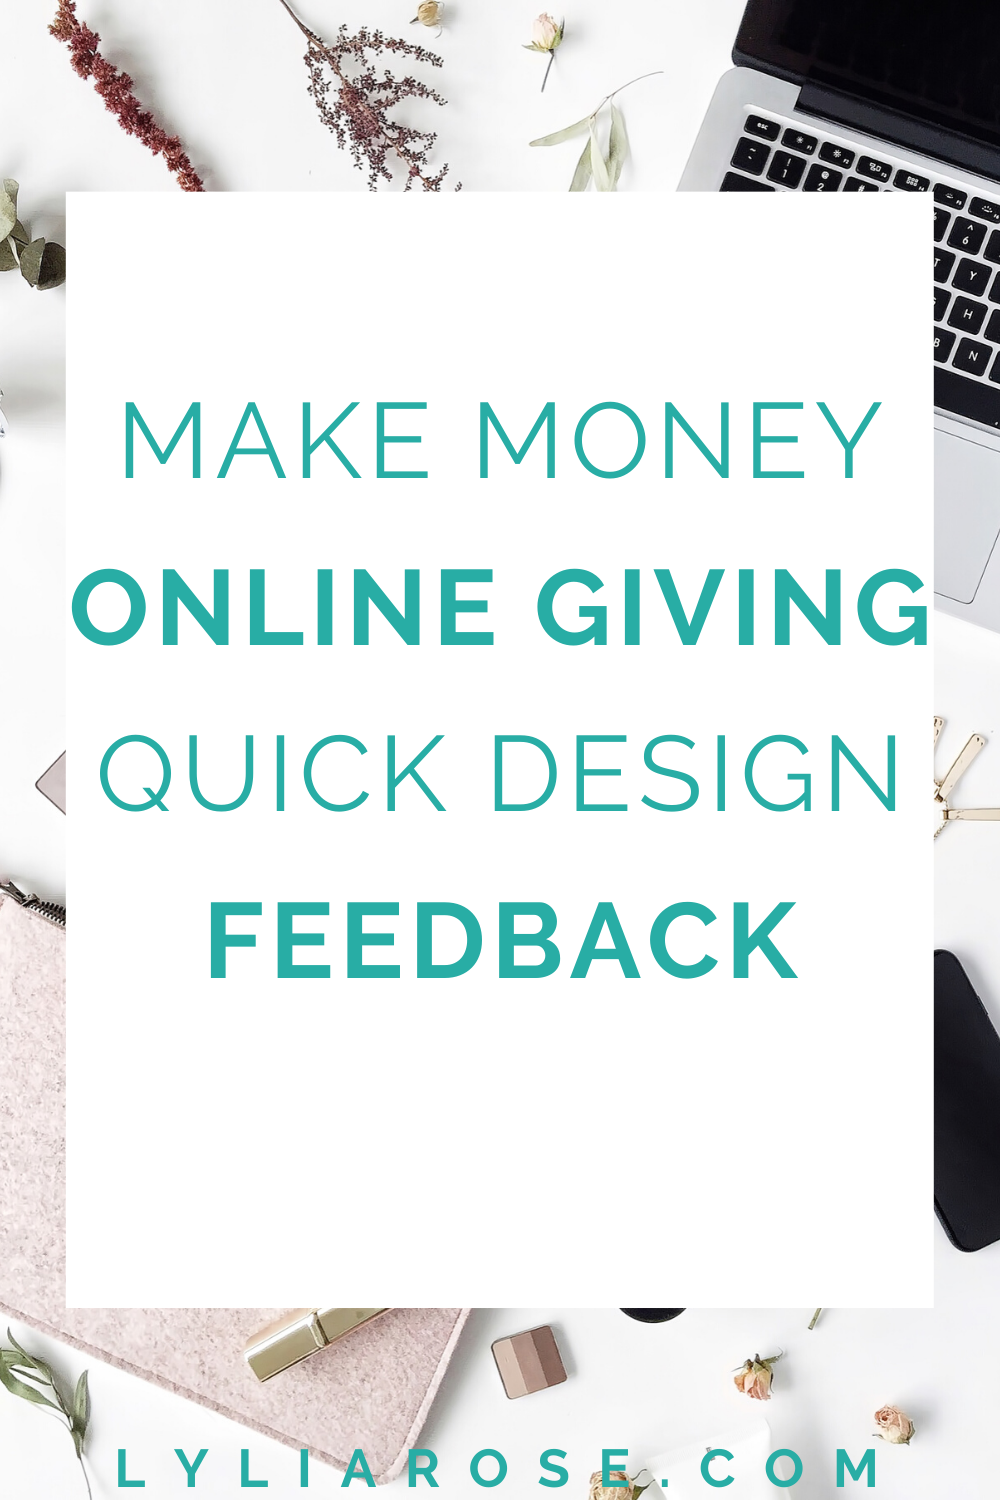 Usercrowd review_ Make money online giving quick design feedback (1)